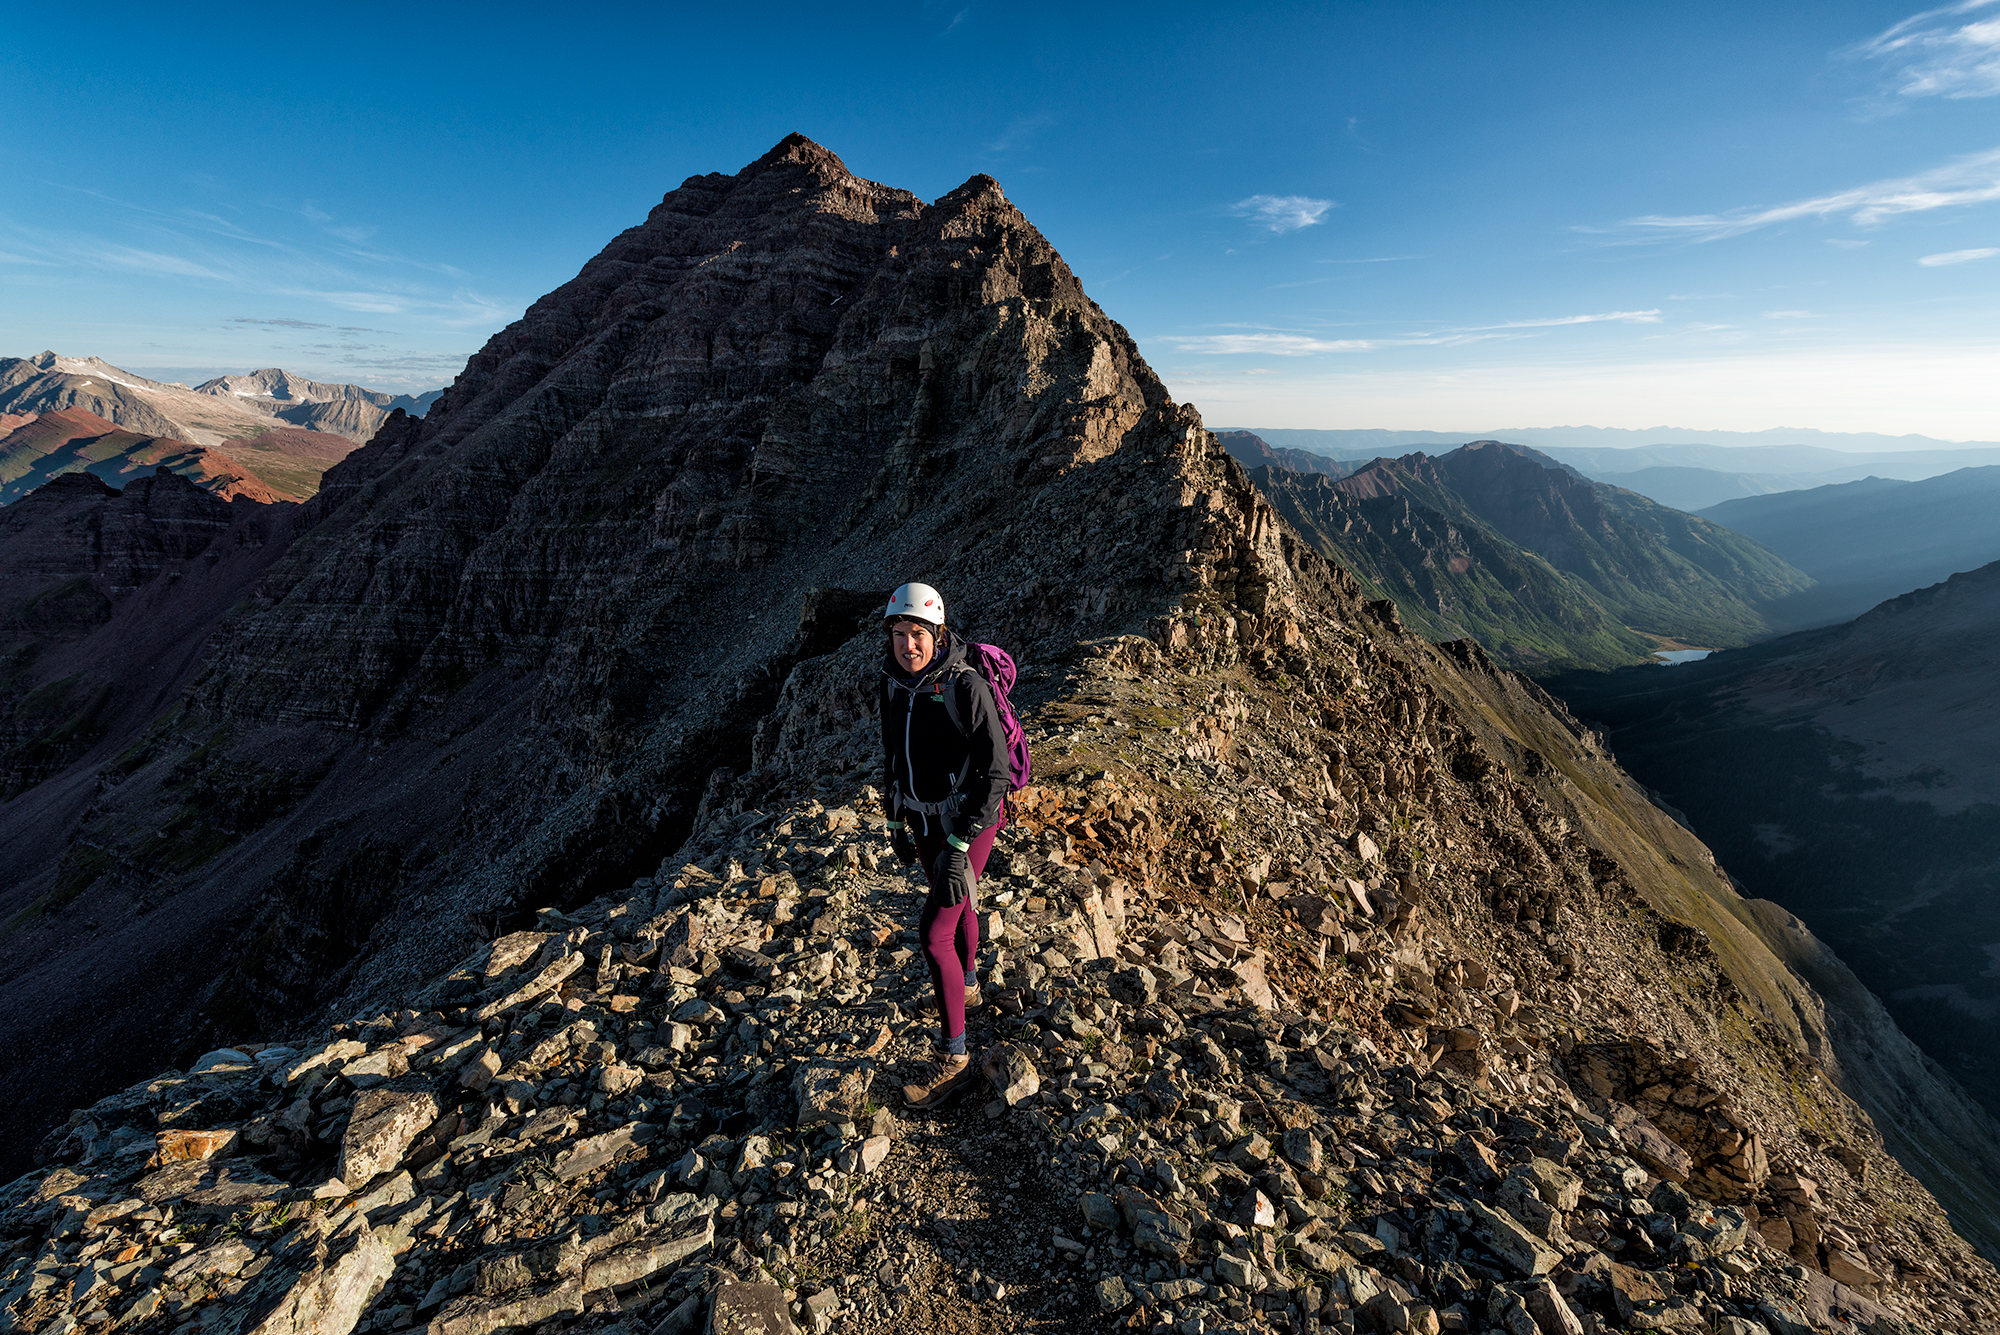 Maider, Maroon Peak South Ridge. Colorado, 2015. Looking up the route to the pyramidal summit crown. (Snowmass and Capitol are visible on the left, and Maroon Lake on the right.)